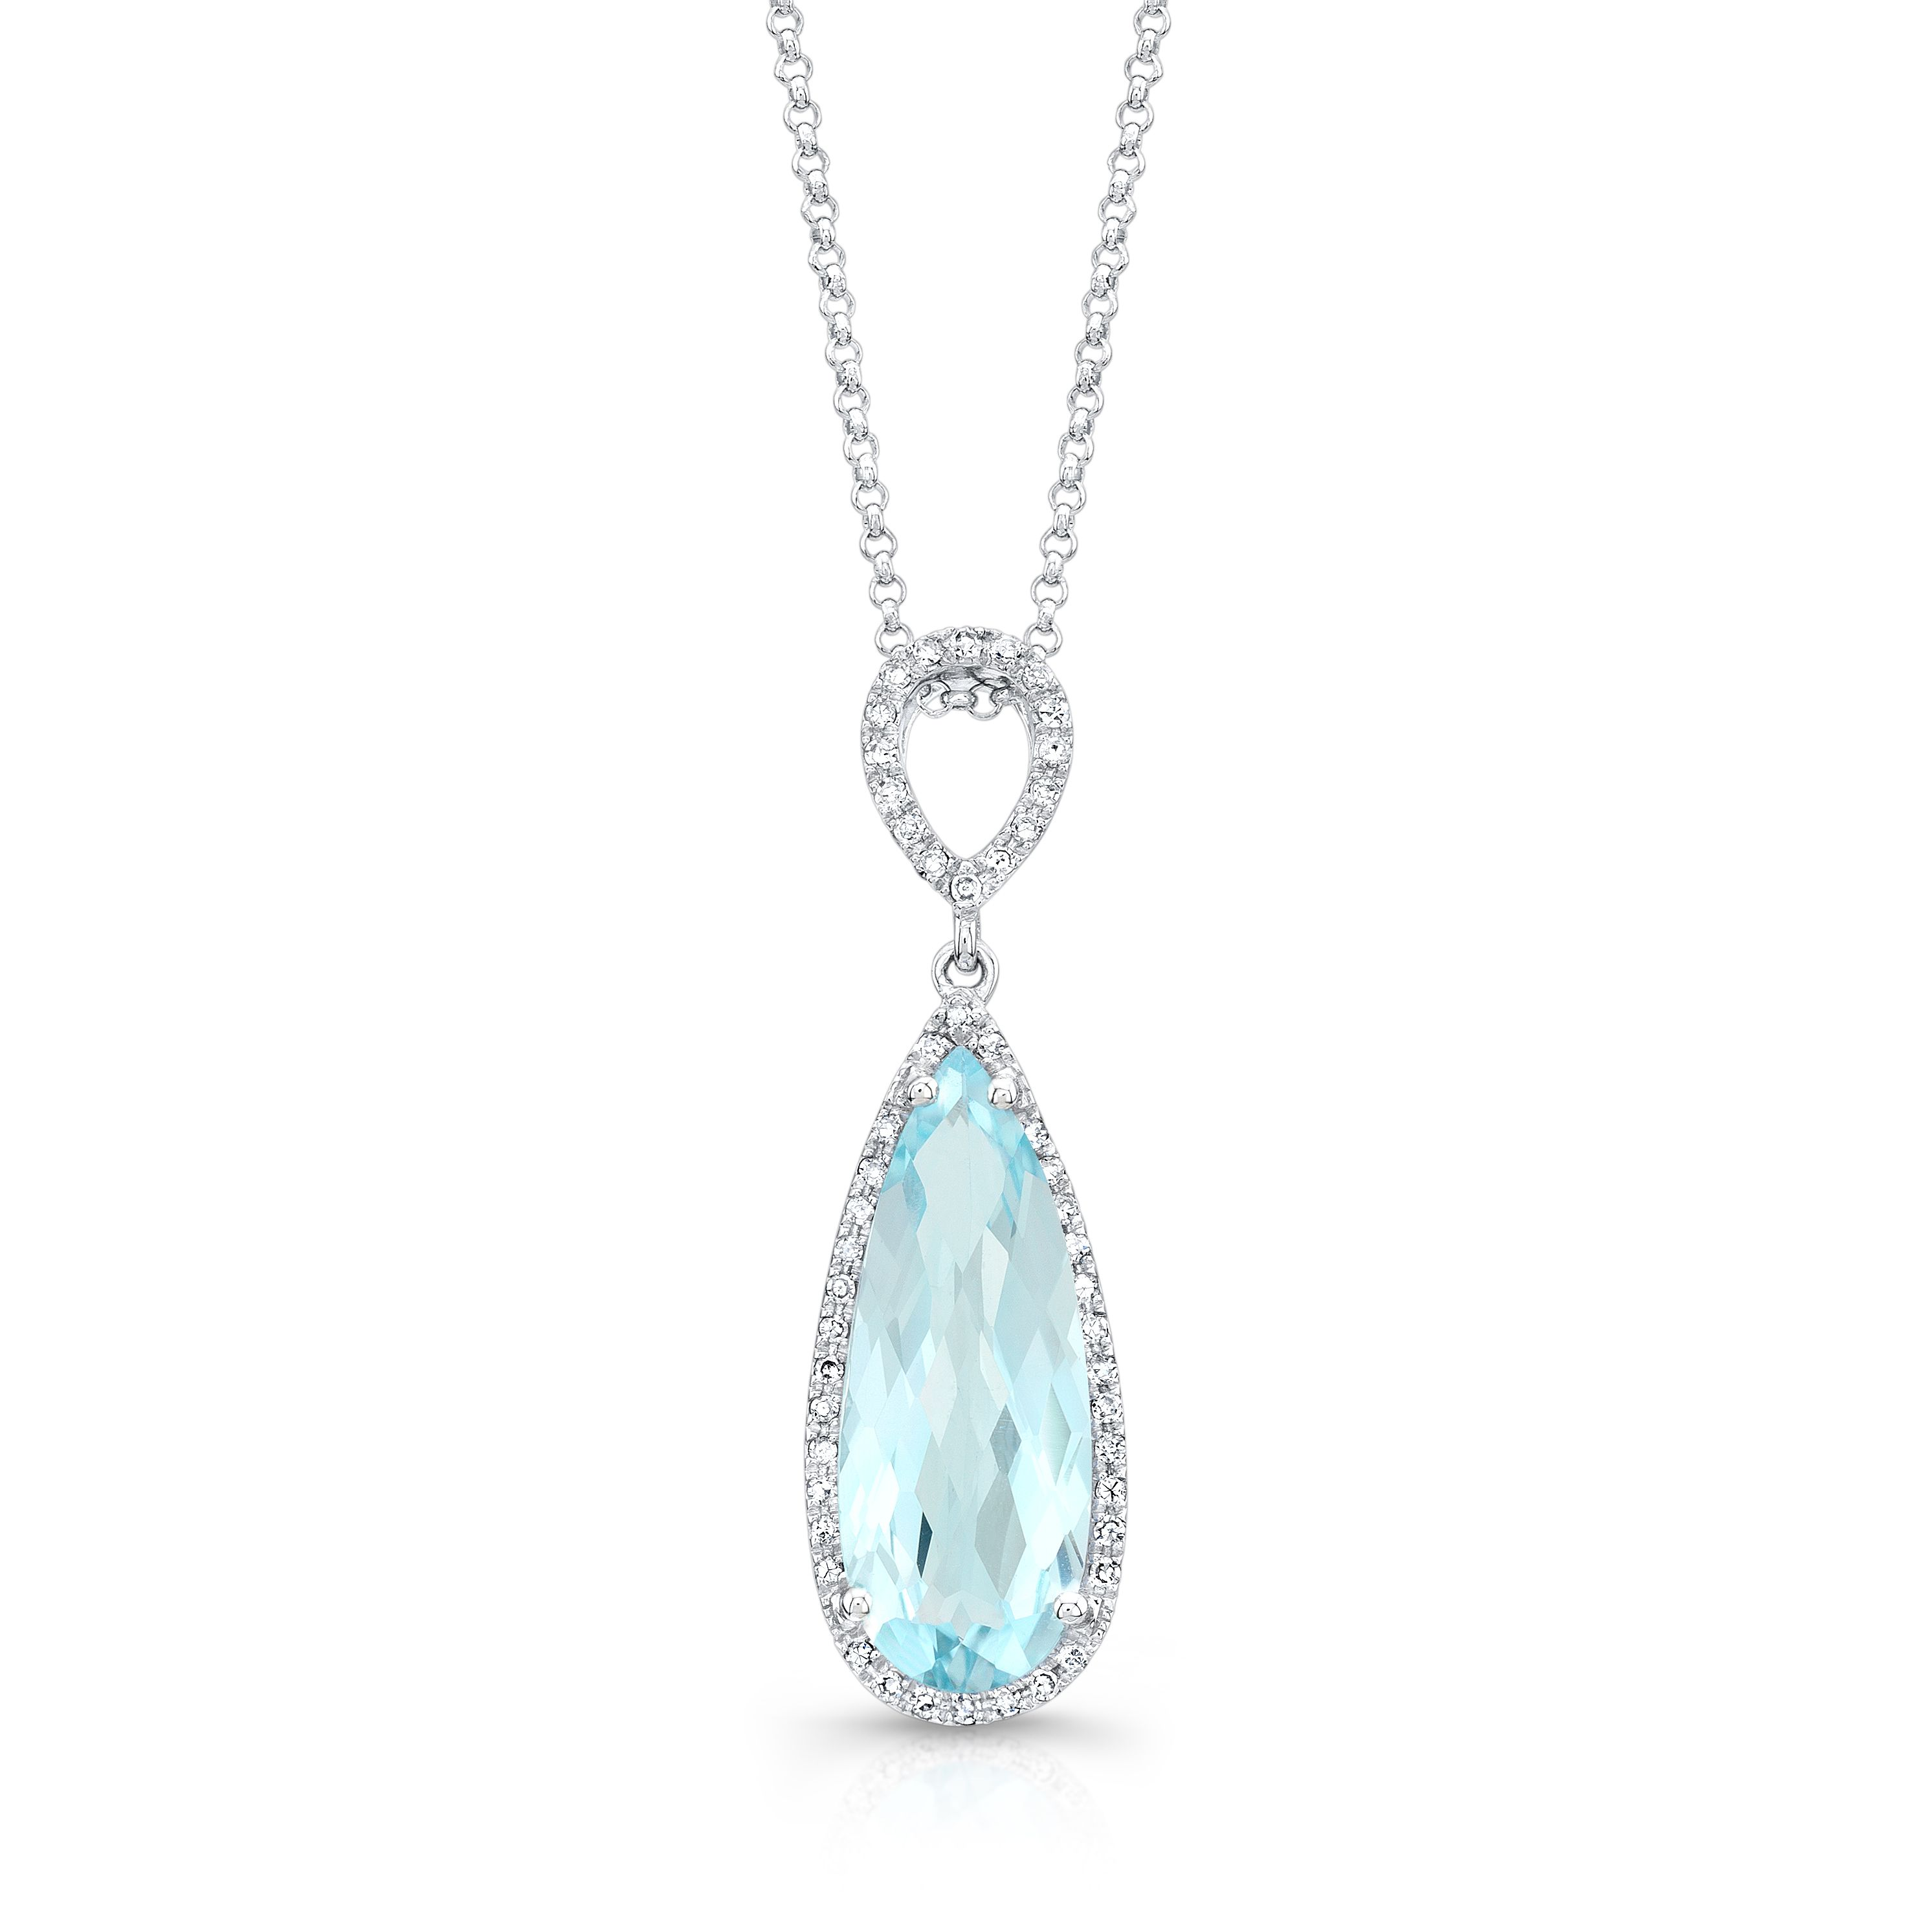 K white gold double drop halo pendant with pear shaped blue